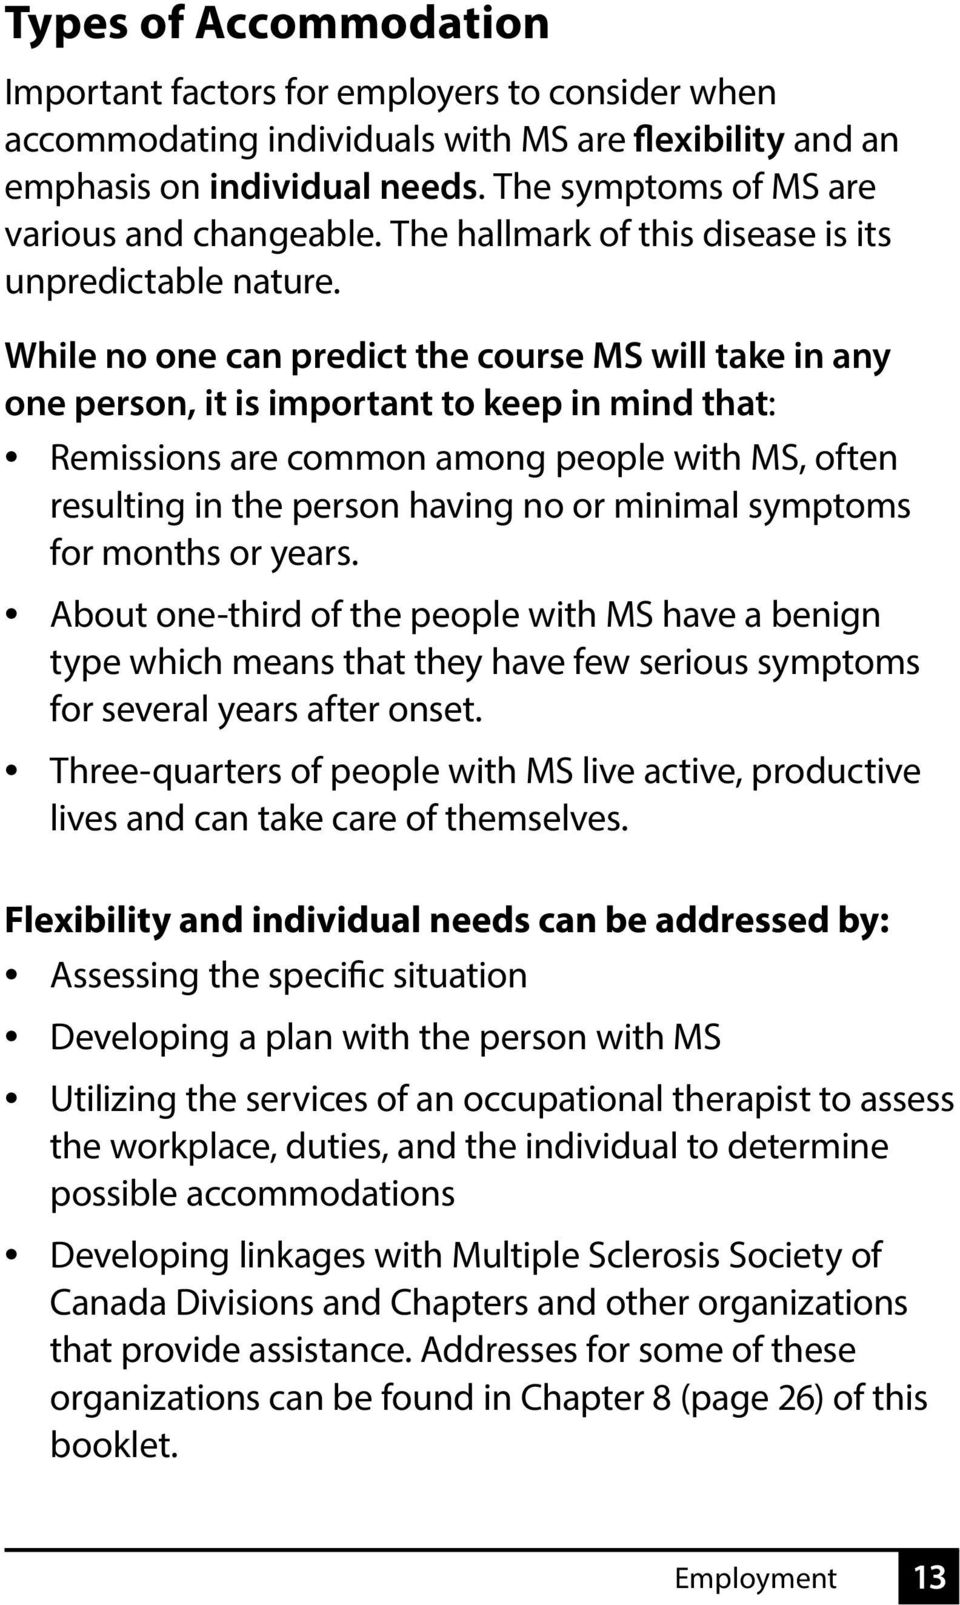 While no one can predict the course MS will take in any one person, it is important to keep in mind that: Remissions are common among people with MS, often resulting in the person having no or